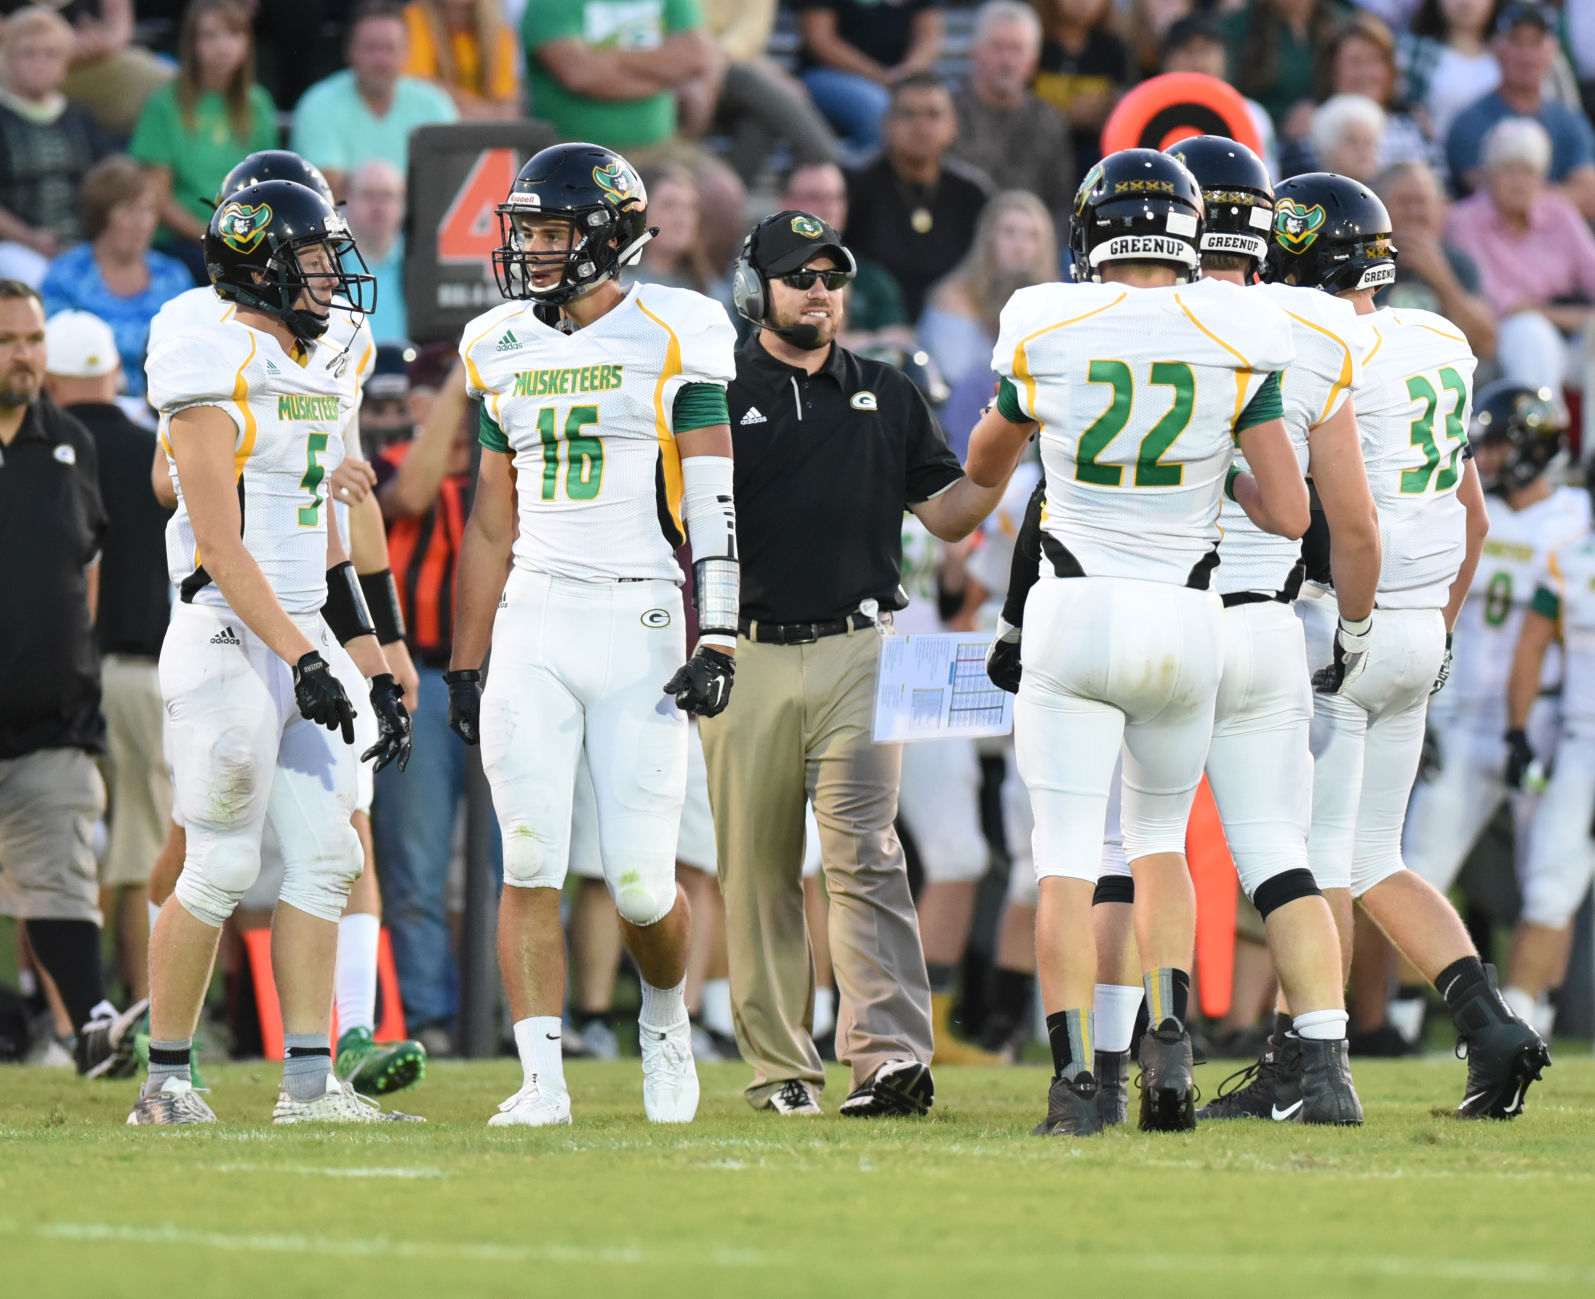 Backyard Brawl Wall: Greenup County Halts Russell In OT